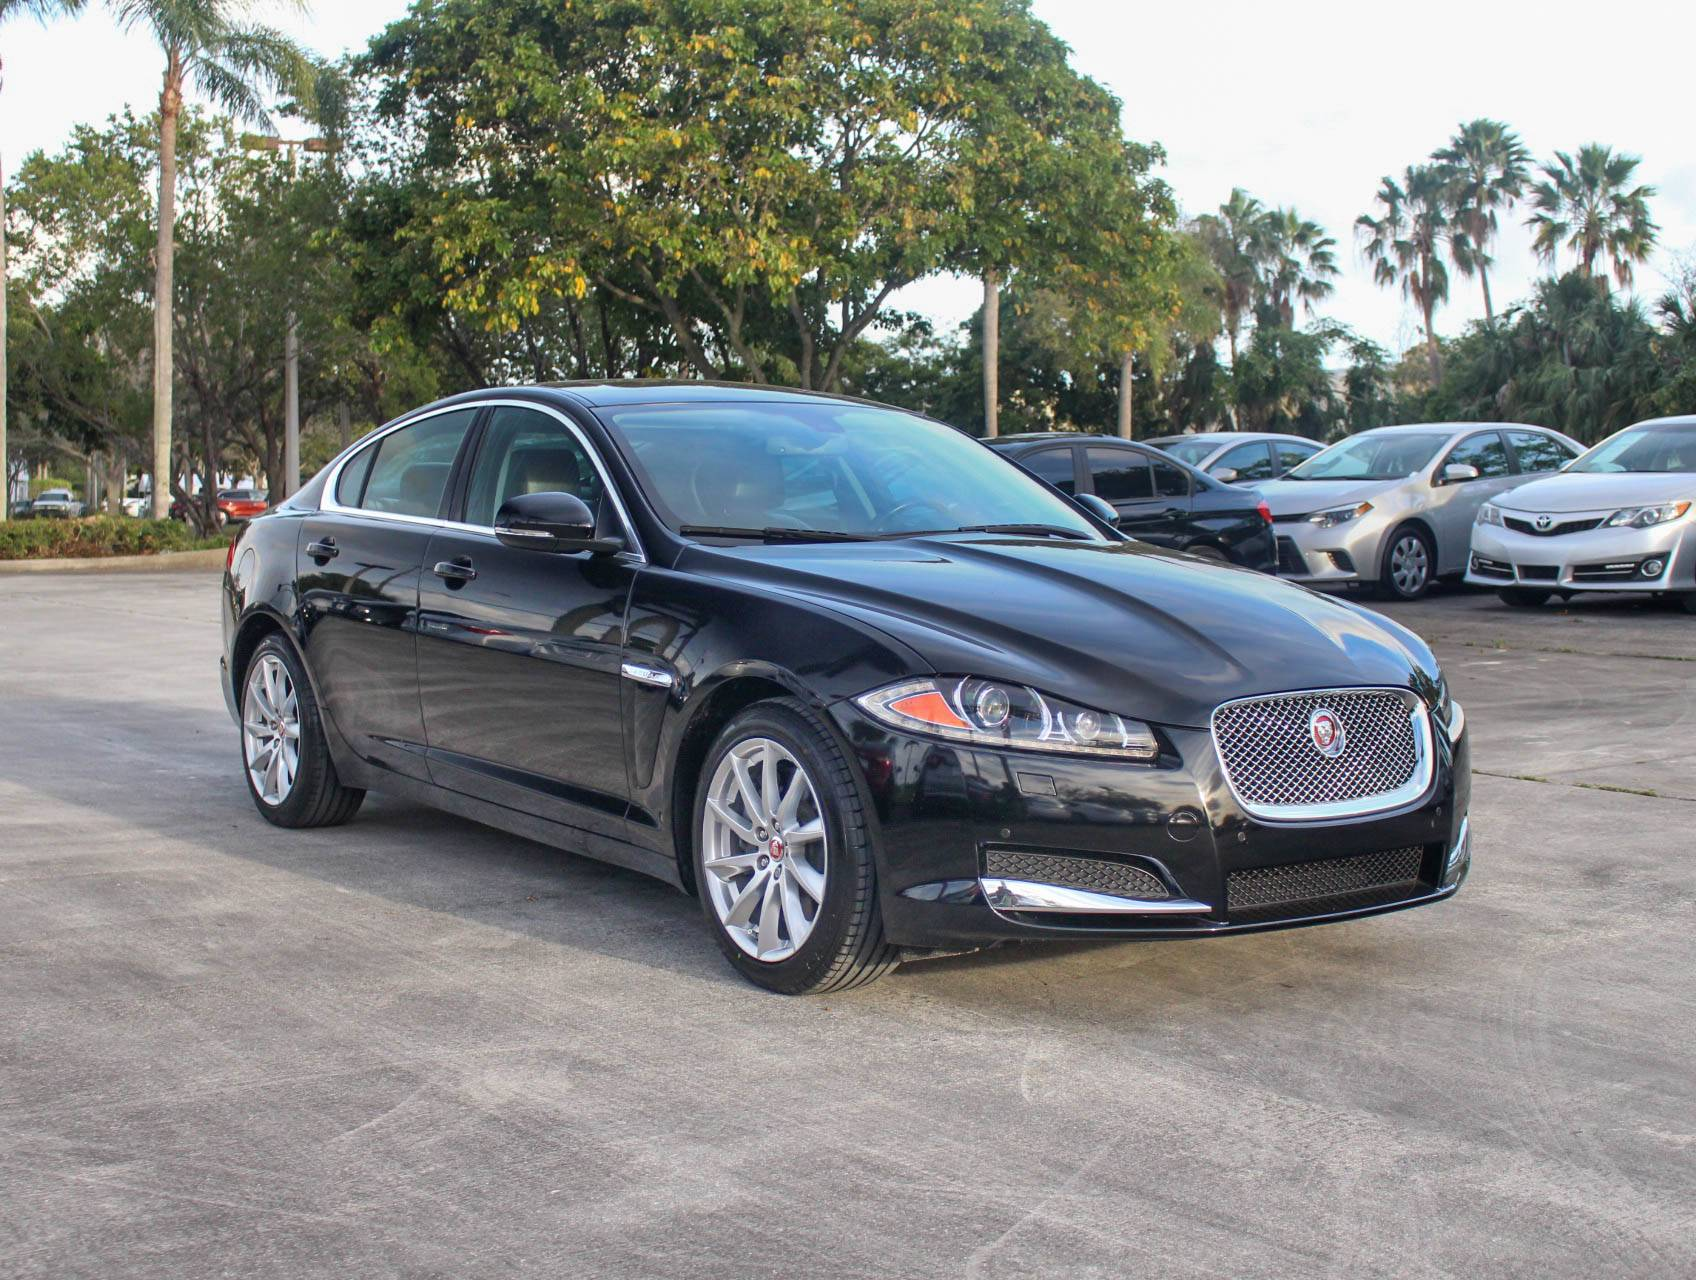 autohaus for jaguar drive sedan xf test sale autohausnaples by youtube watch com of naples sold